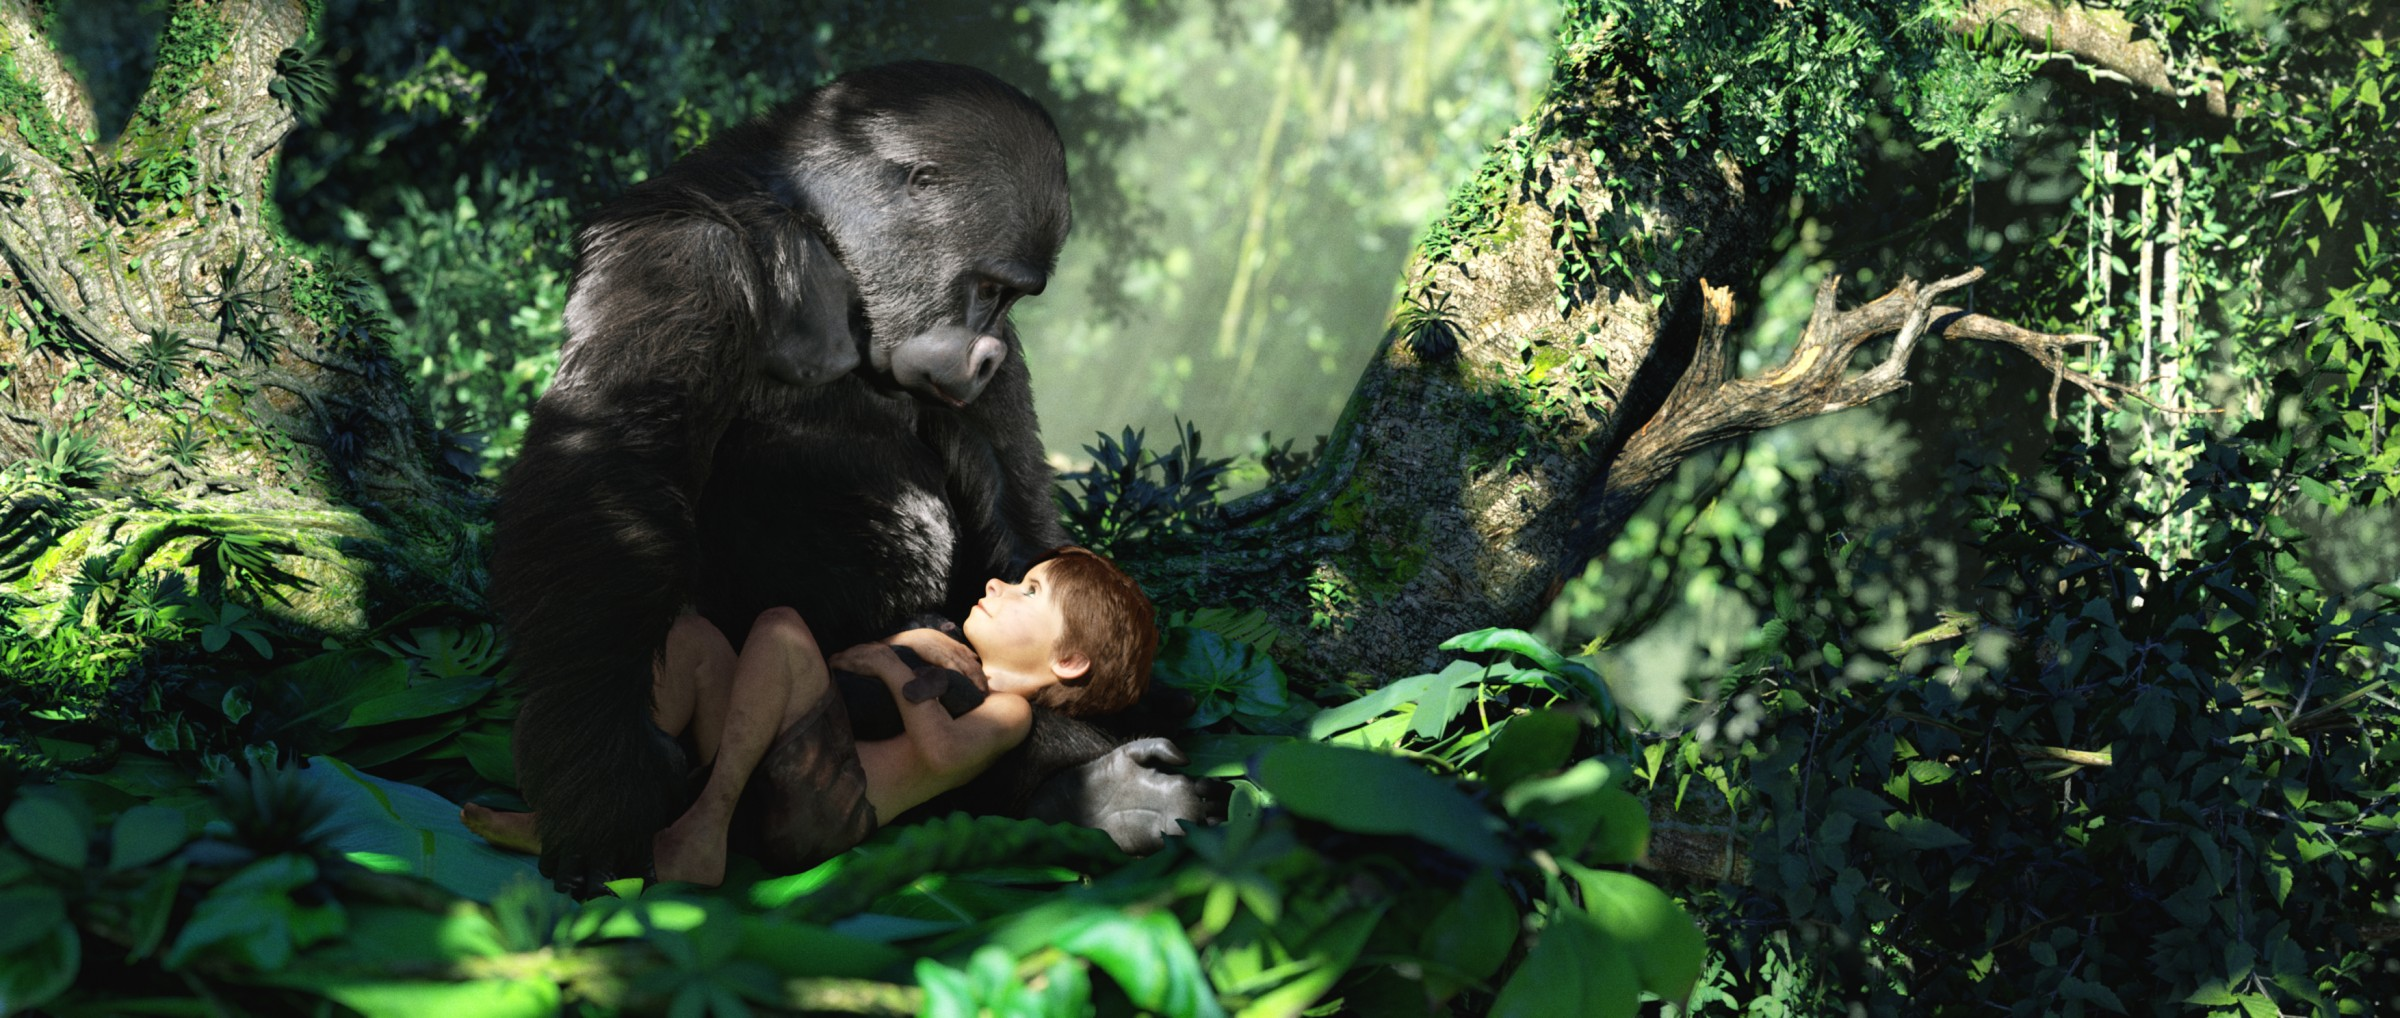 Tarzan 3D-Animation Official Poster Banner PROMO PHOTOS-10DEZEMBRO2013-08